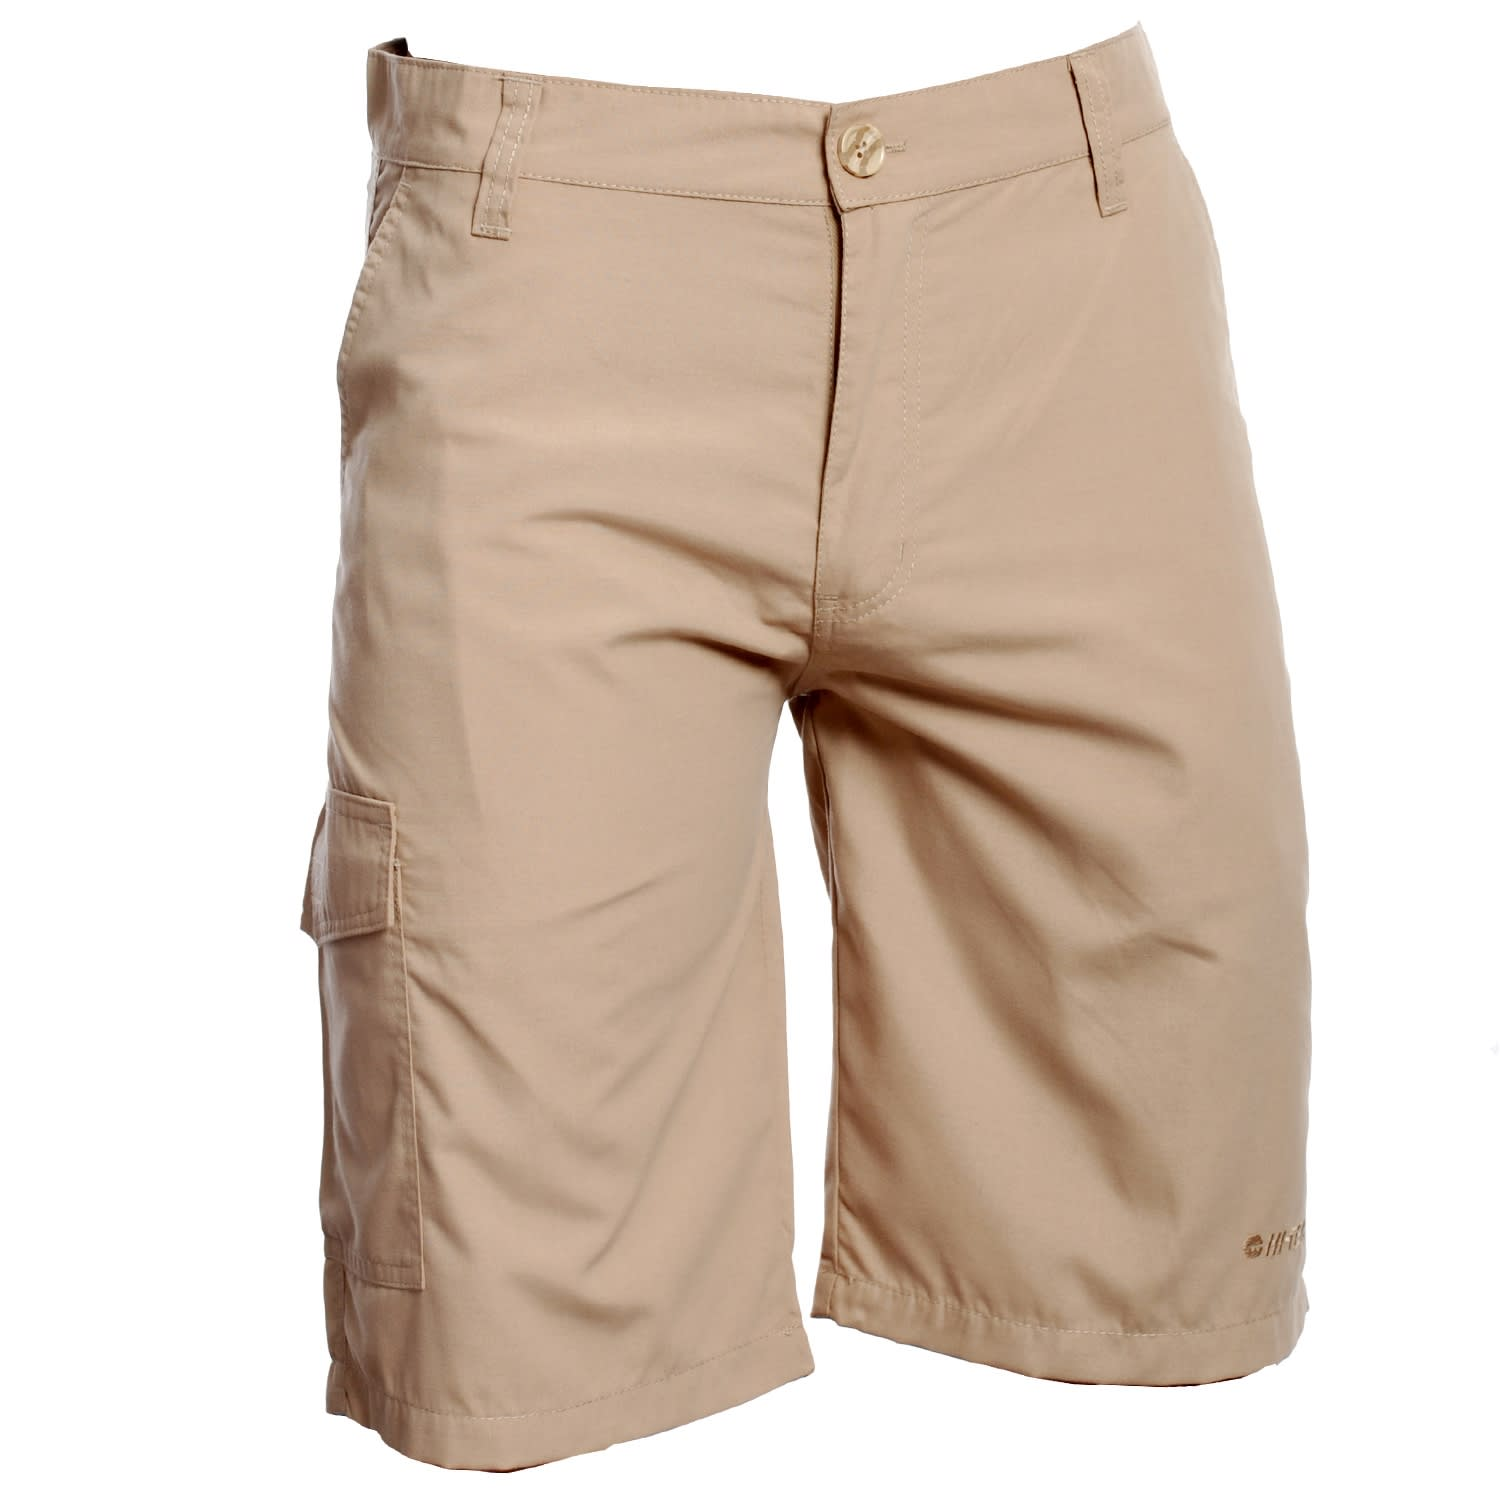 Hi-Tec Men's Prilo Cargo Short